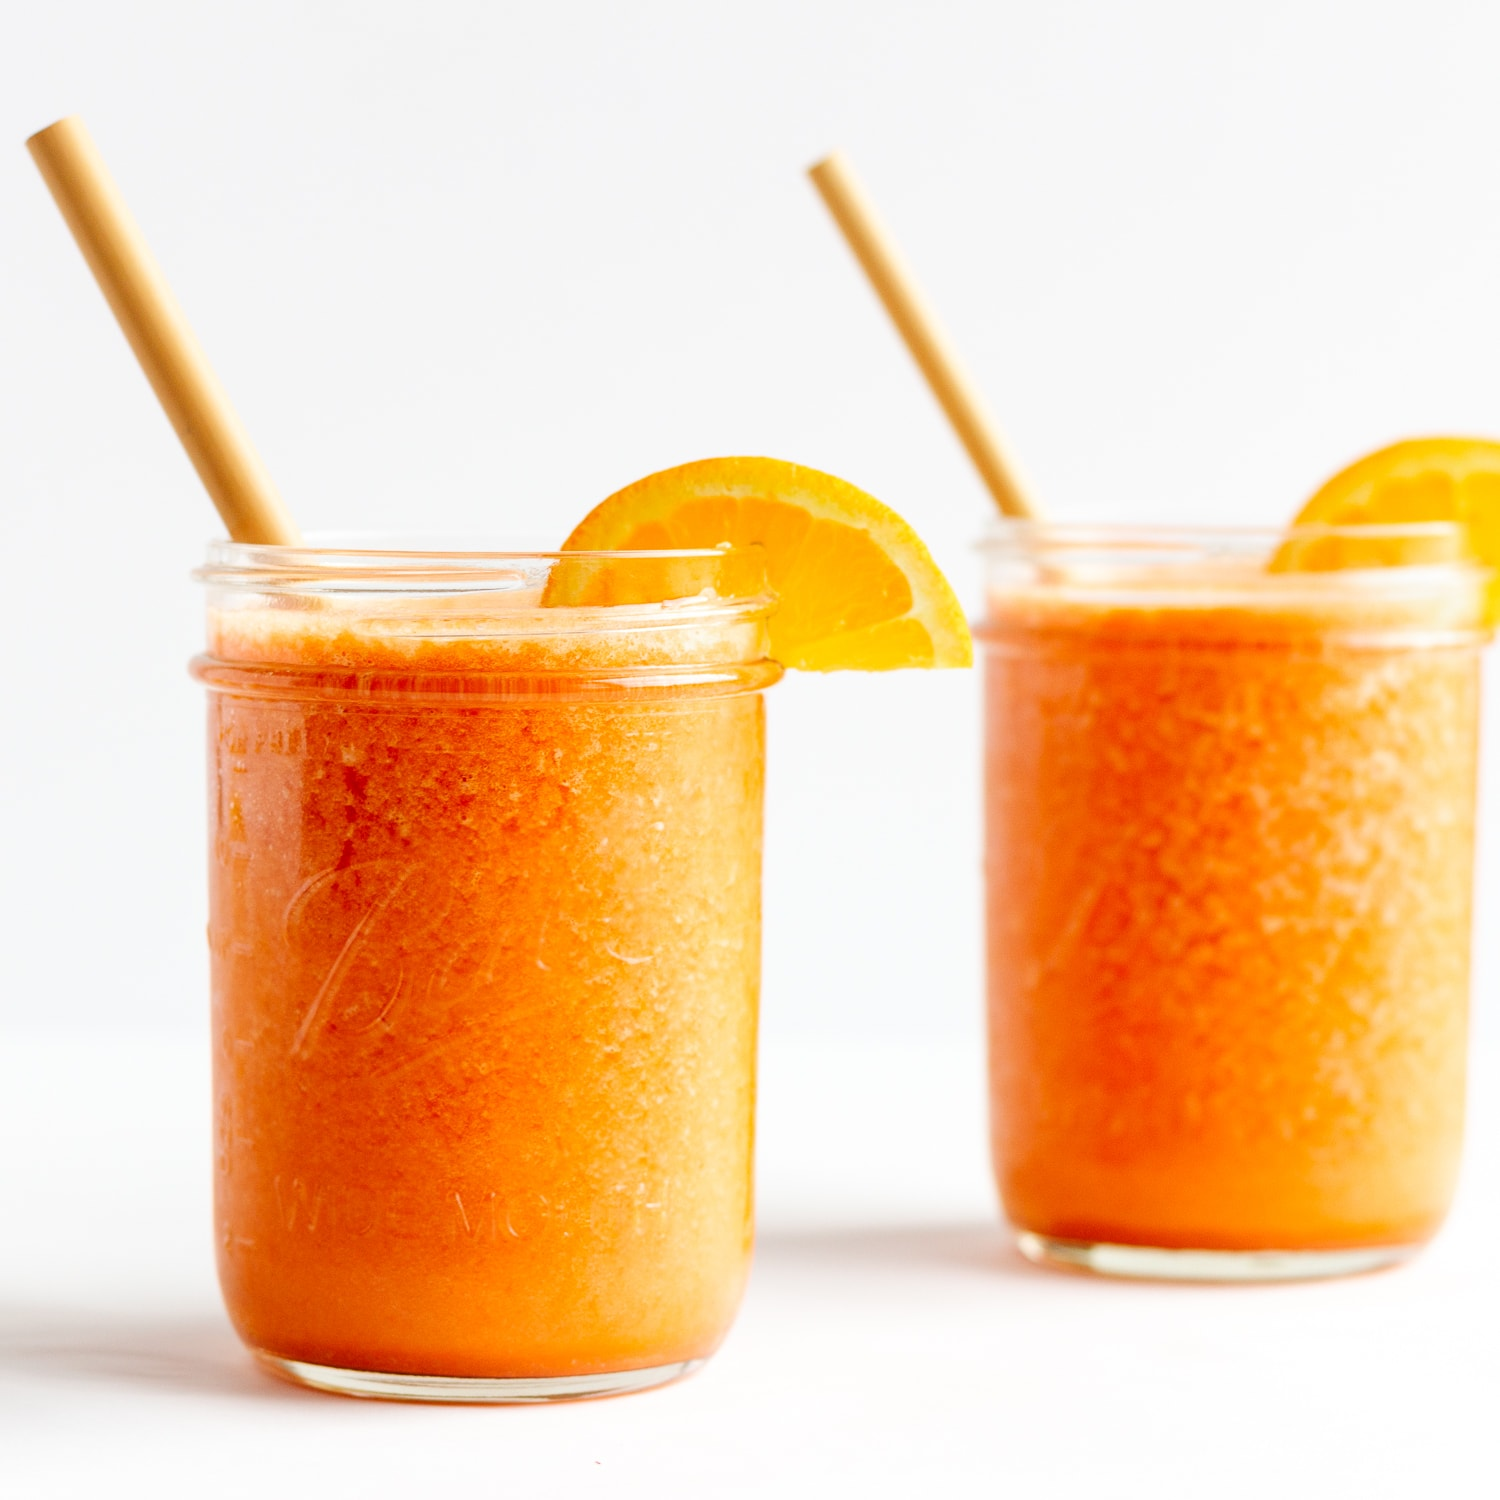 Two mason jars filled with Vitamin C Immune Boosting Smoothie and garnished with orange slices and a bamboo straw.